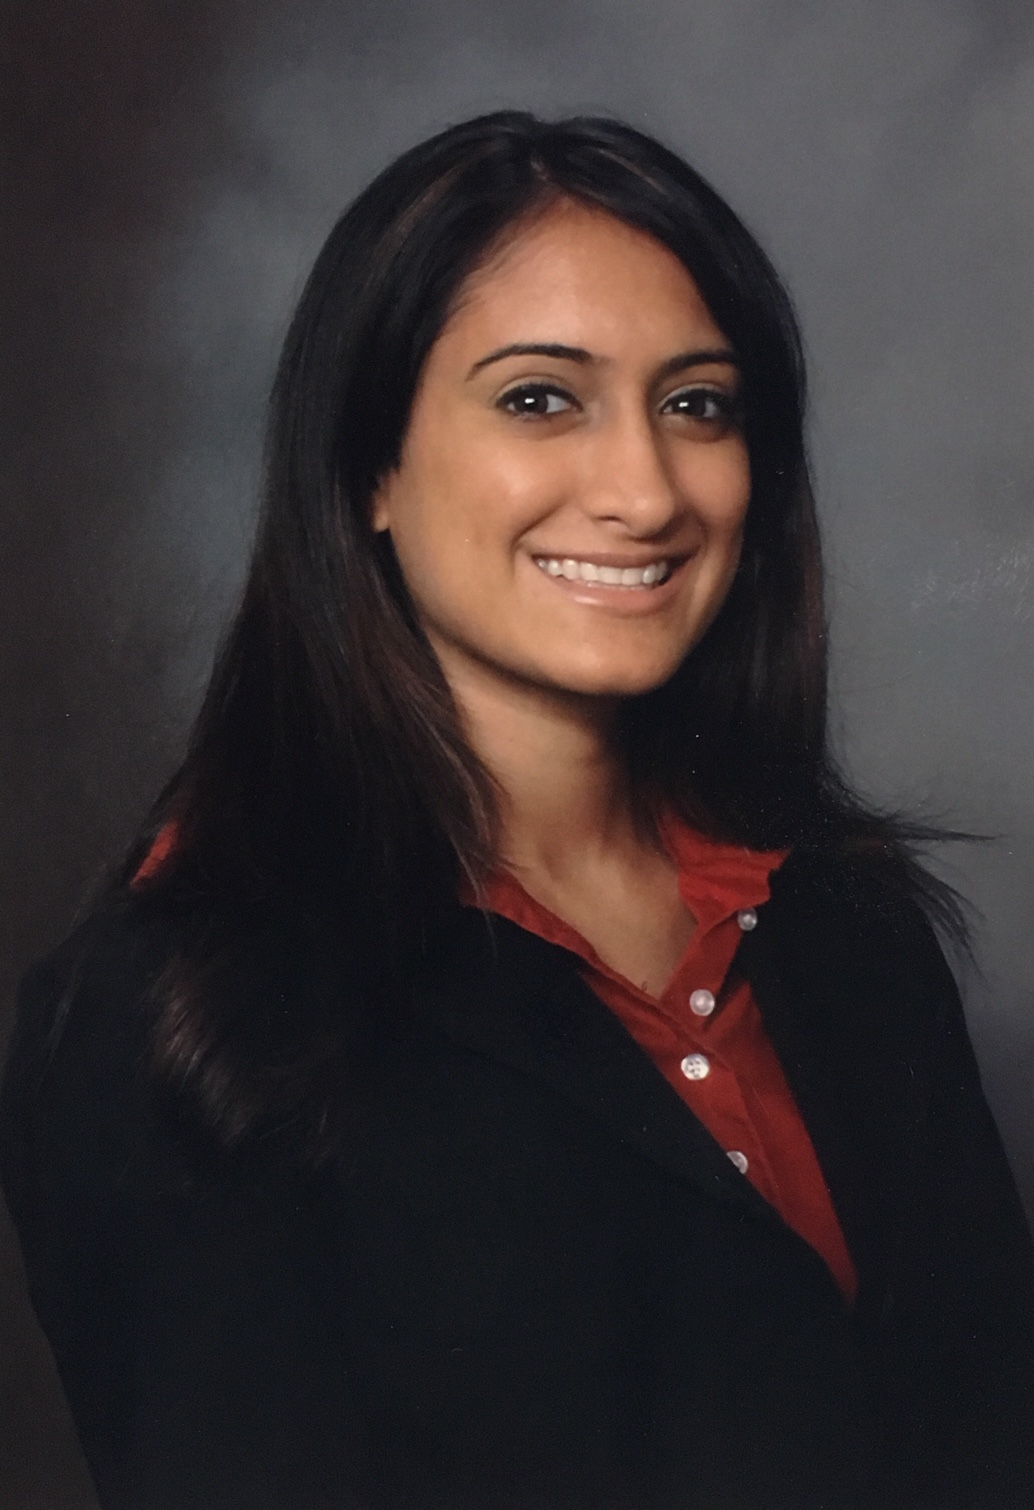 Vaishali Gajera M.D., D.ABA - Fellowship Trained Regional AnesthesiologistAttending Anesthesiologist, Morton Plant HospitalClearwater, FL